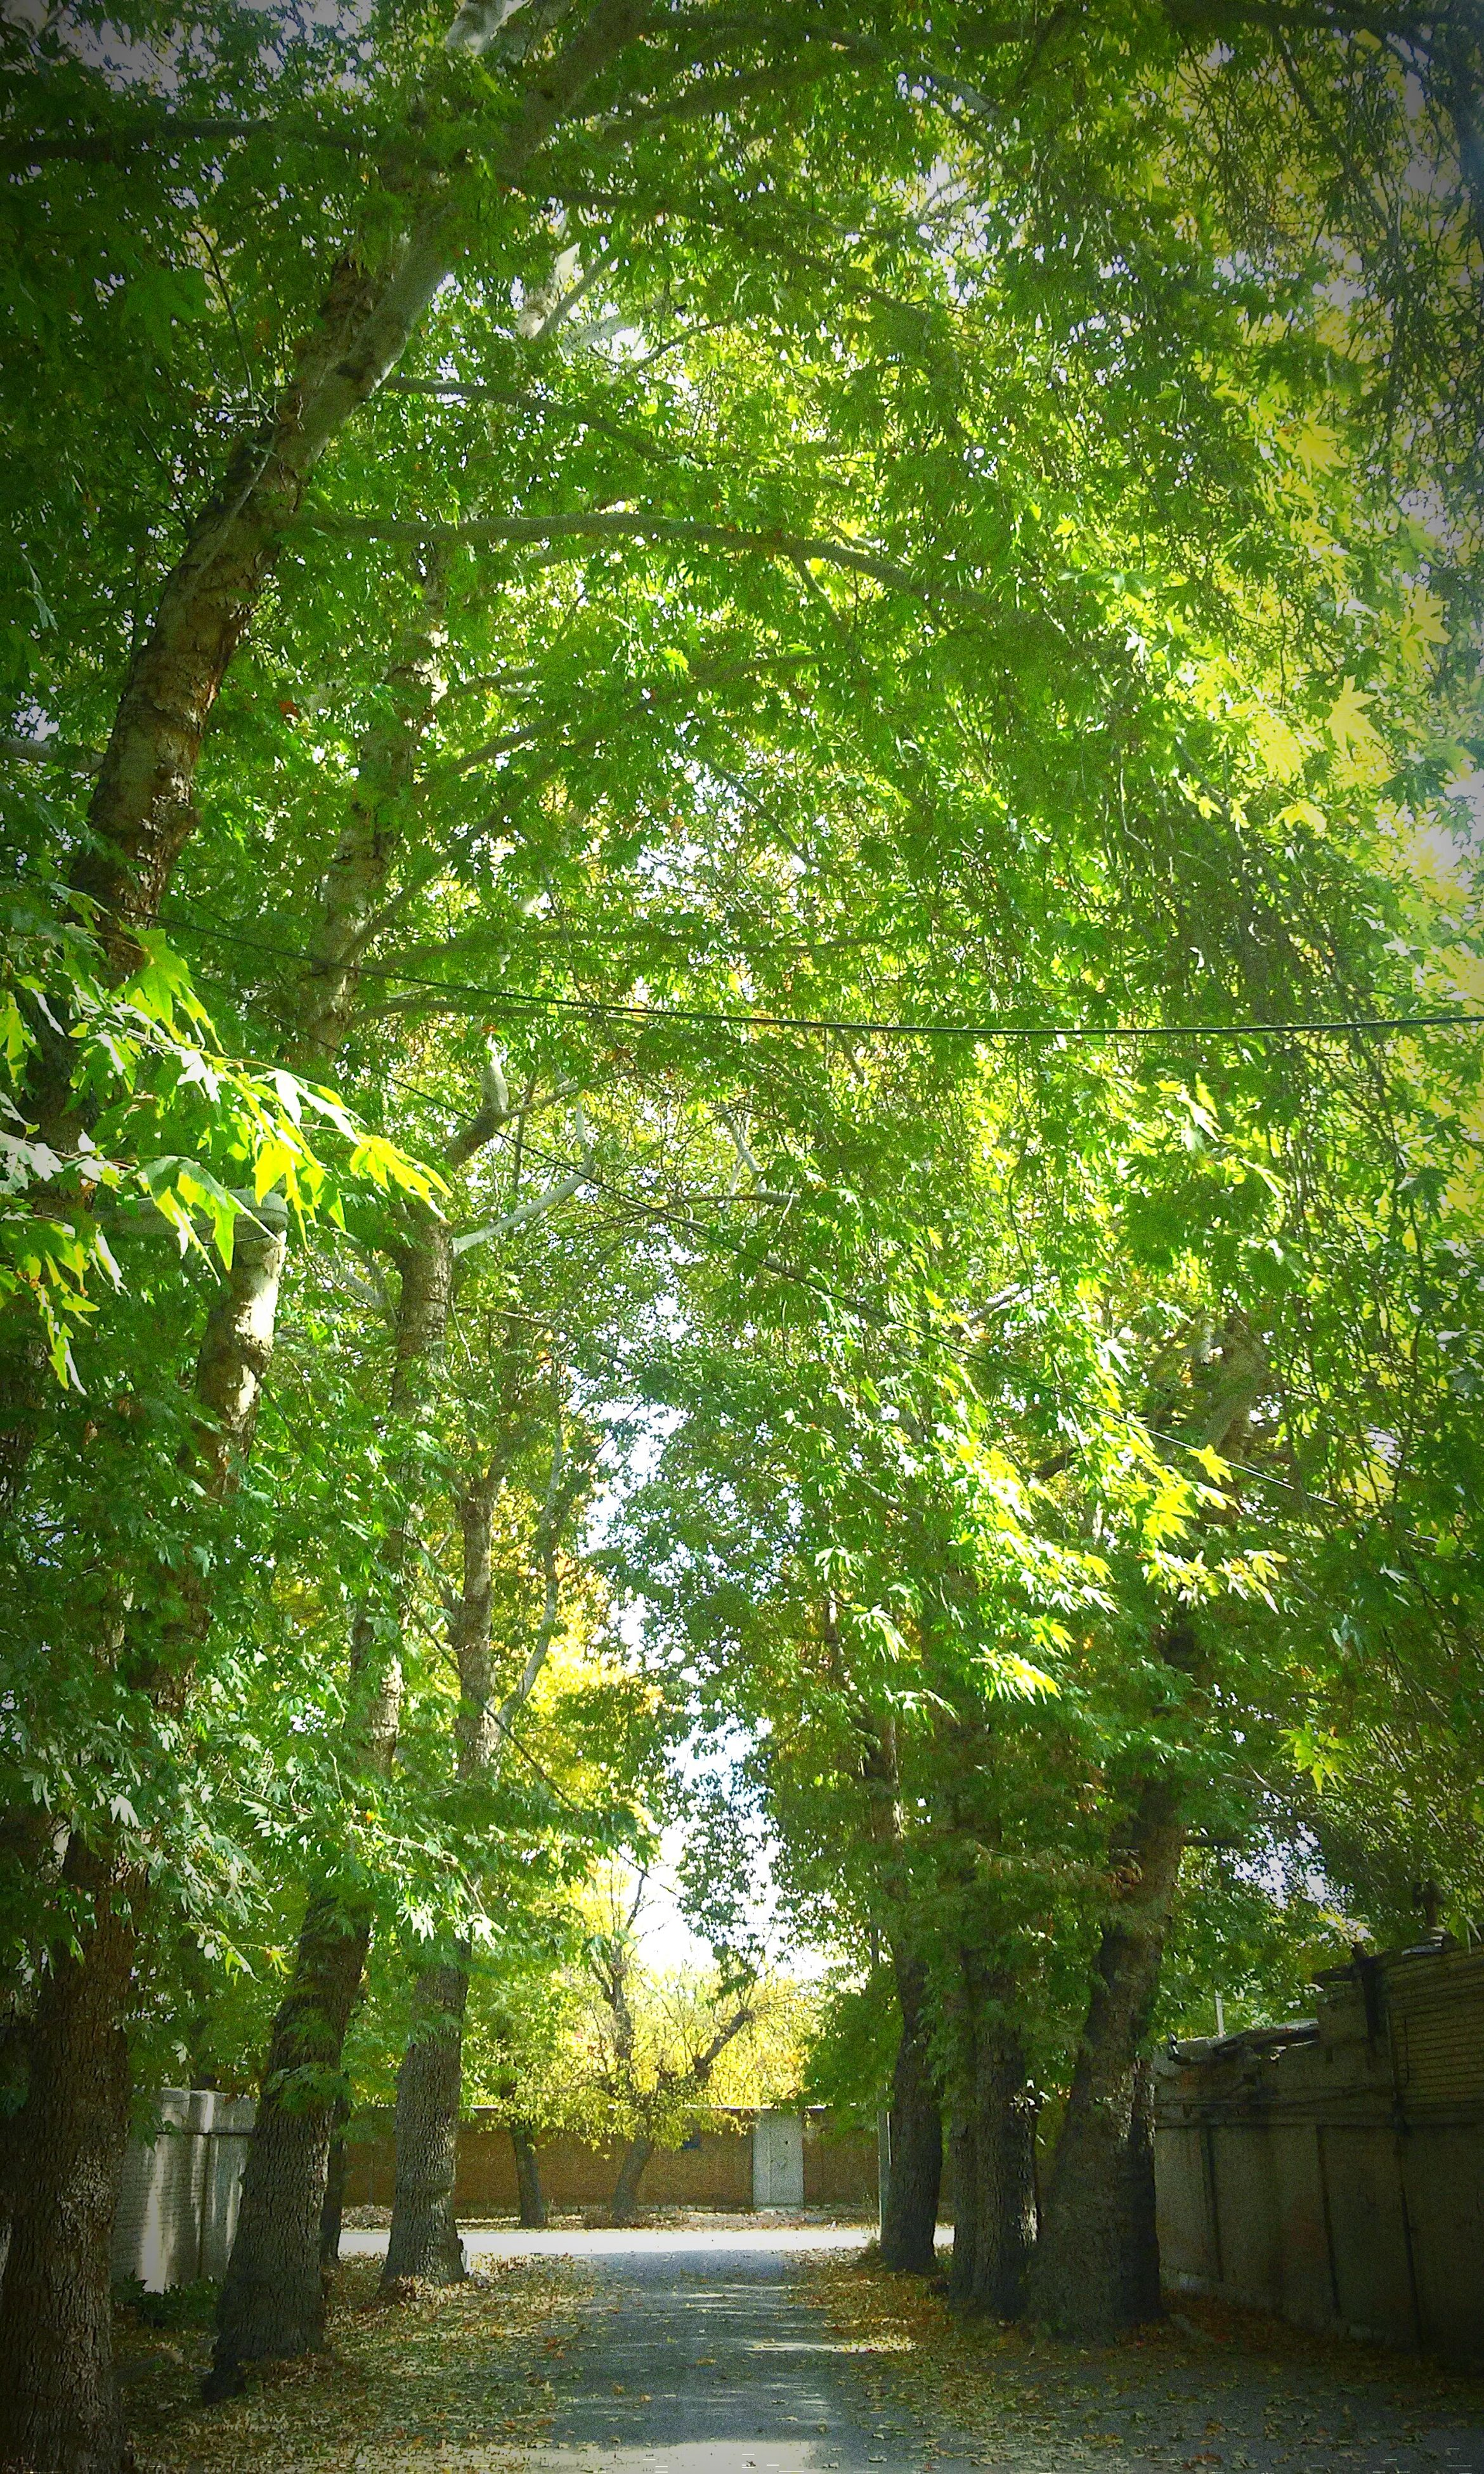 tree, growth, the way forward, green color, tranquility, nature, footpath, branch, park - man made space, beauty in nature, tranquil scene, pathway, walkway, street, lush foliage, outdoors, day, road, plant, empty